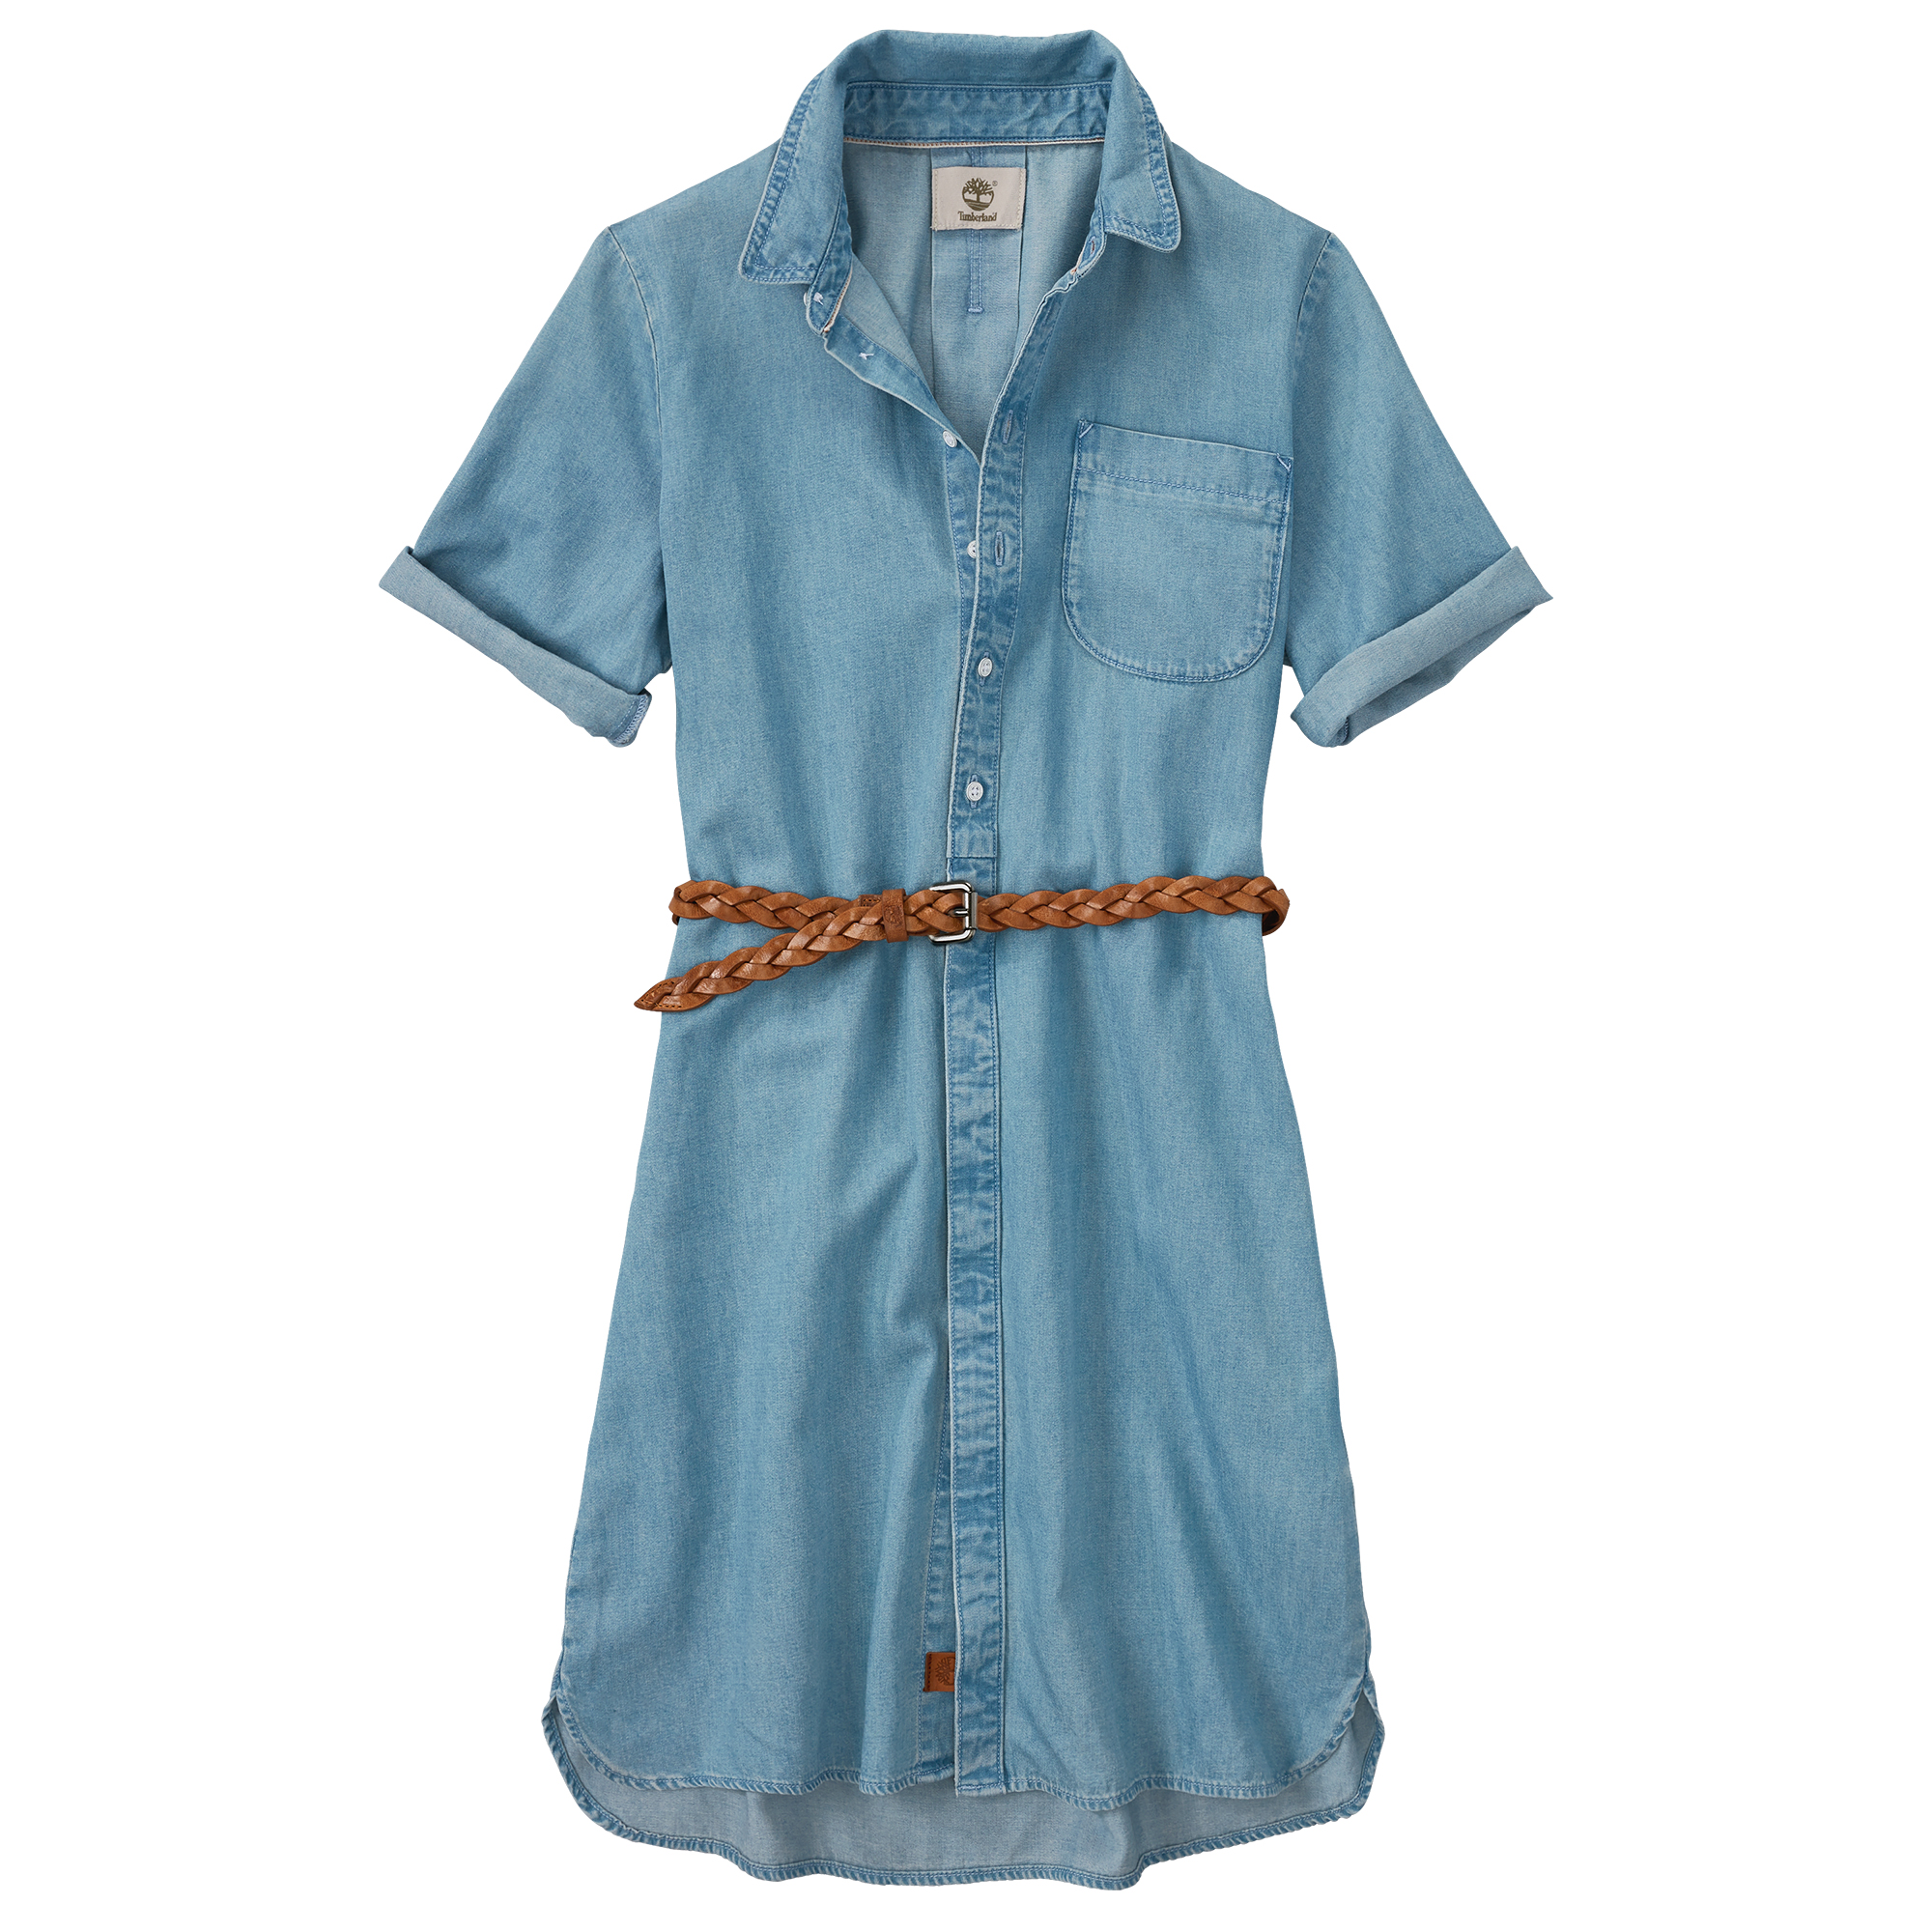 Newfound Rvr Denim Dress